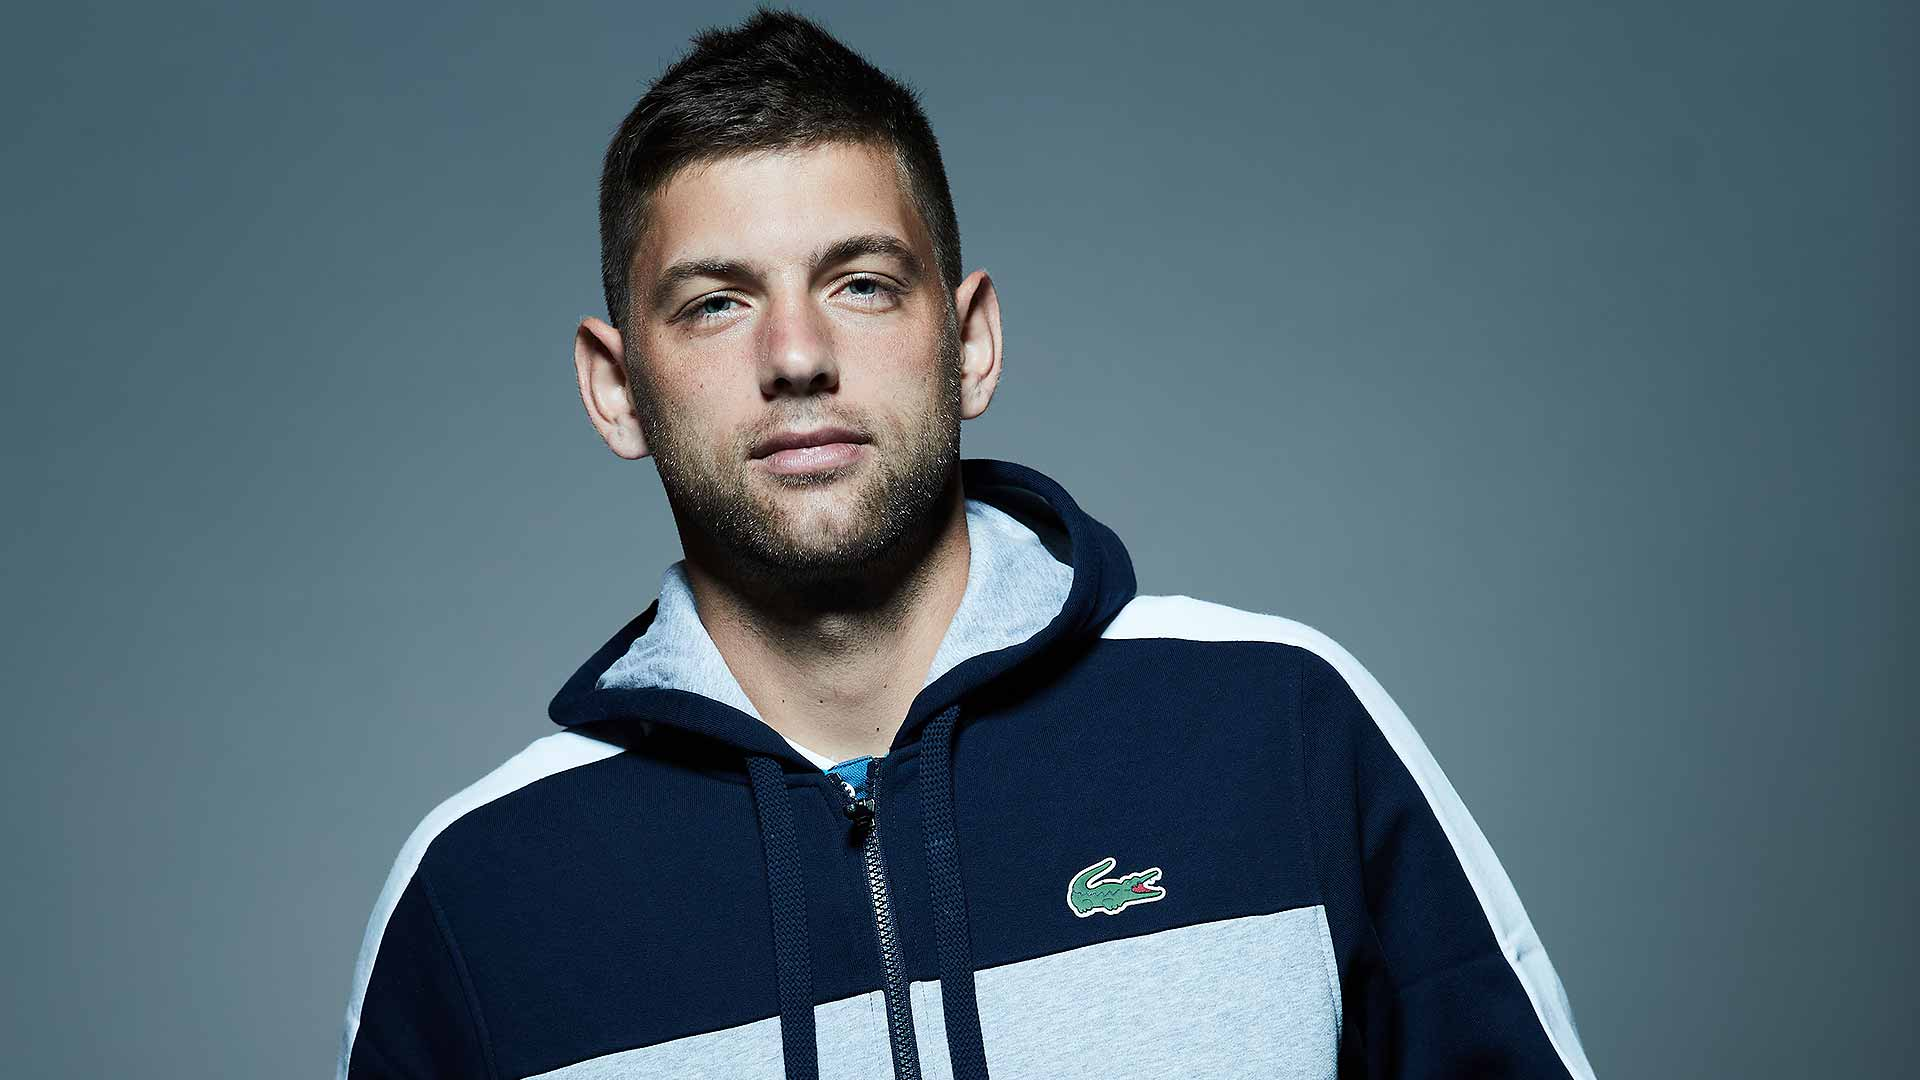 Filip Krajinovic plays Rafael Nadal at the BNP Paribas Open